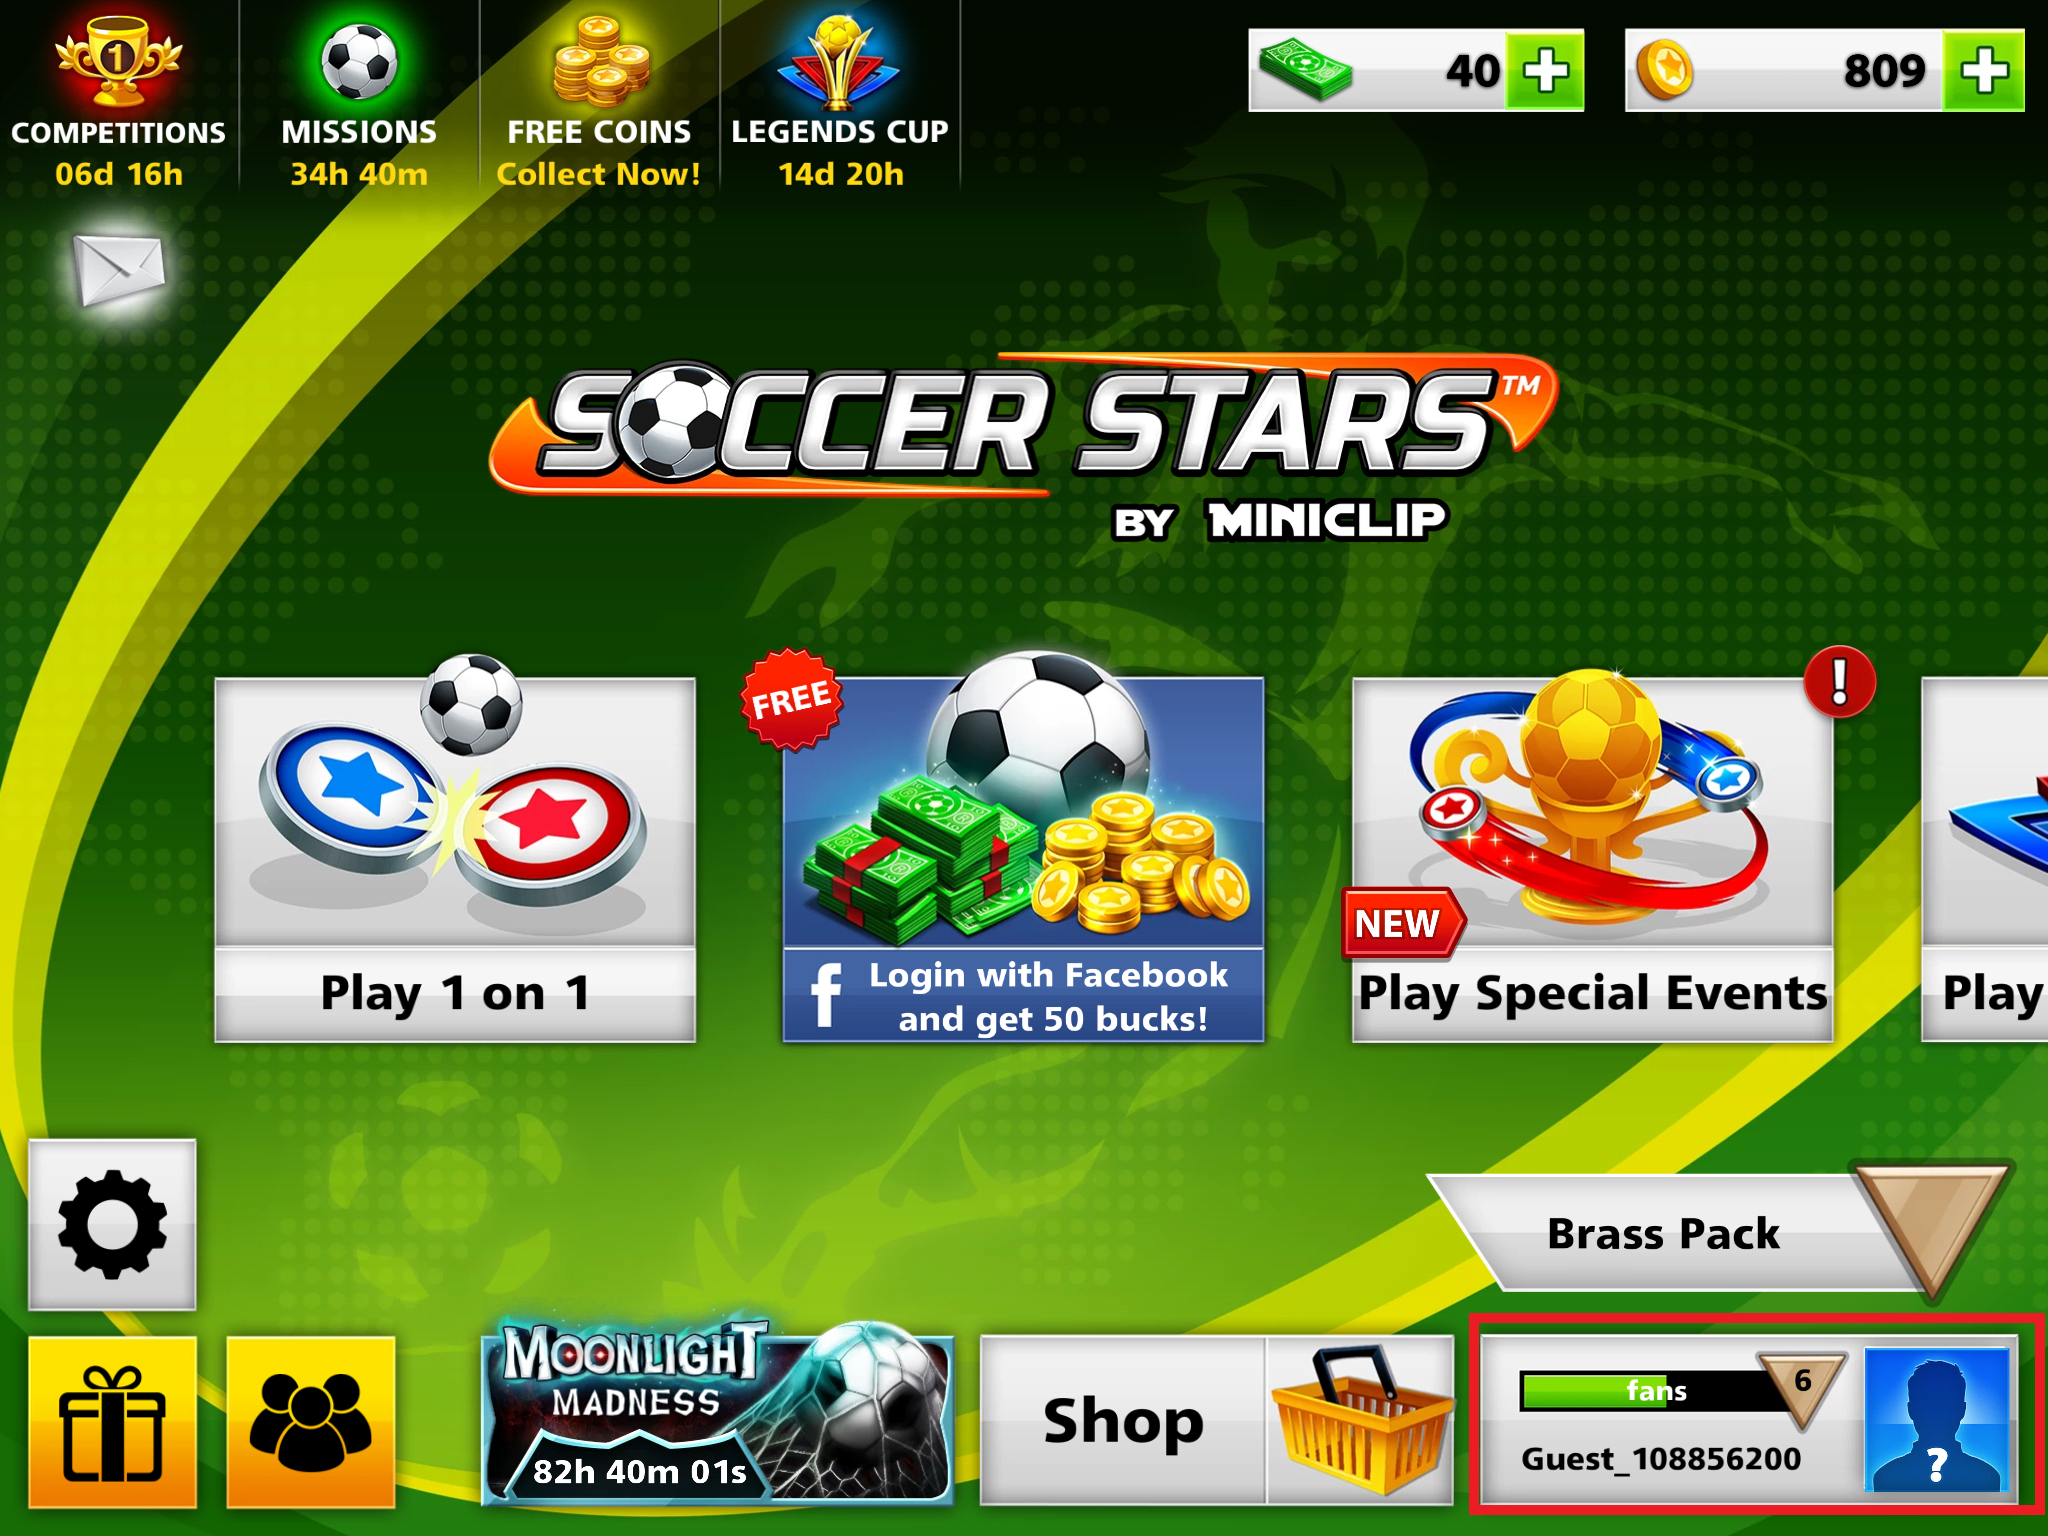 fb04611f0a53 You ll see your Player Profile displayed with your Soccer Stars User ID